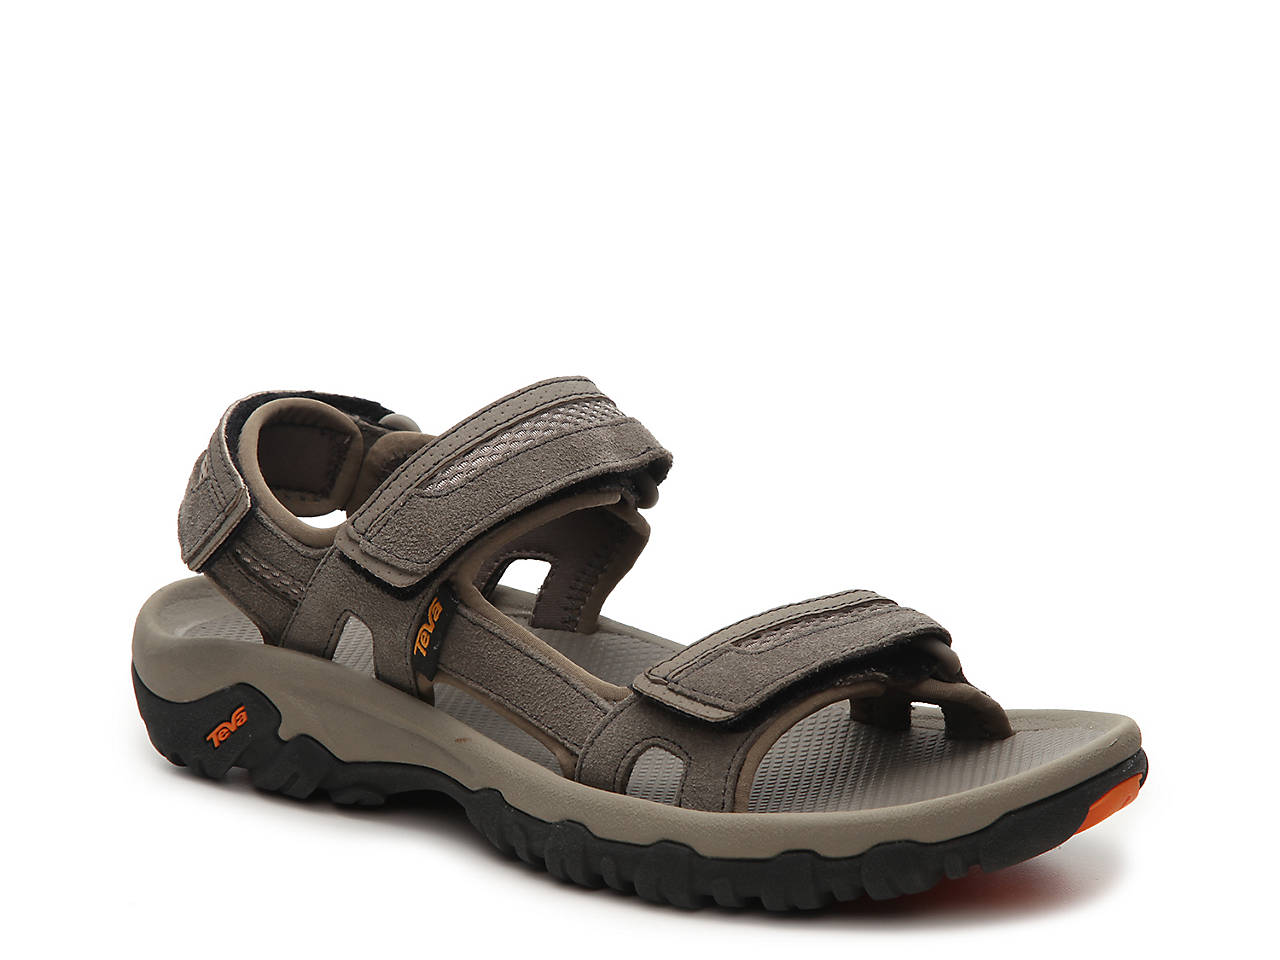 Teva Mens Shoes Clearance